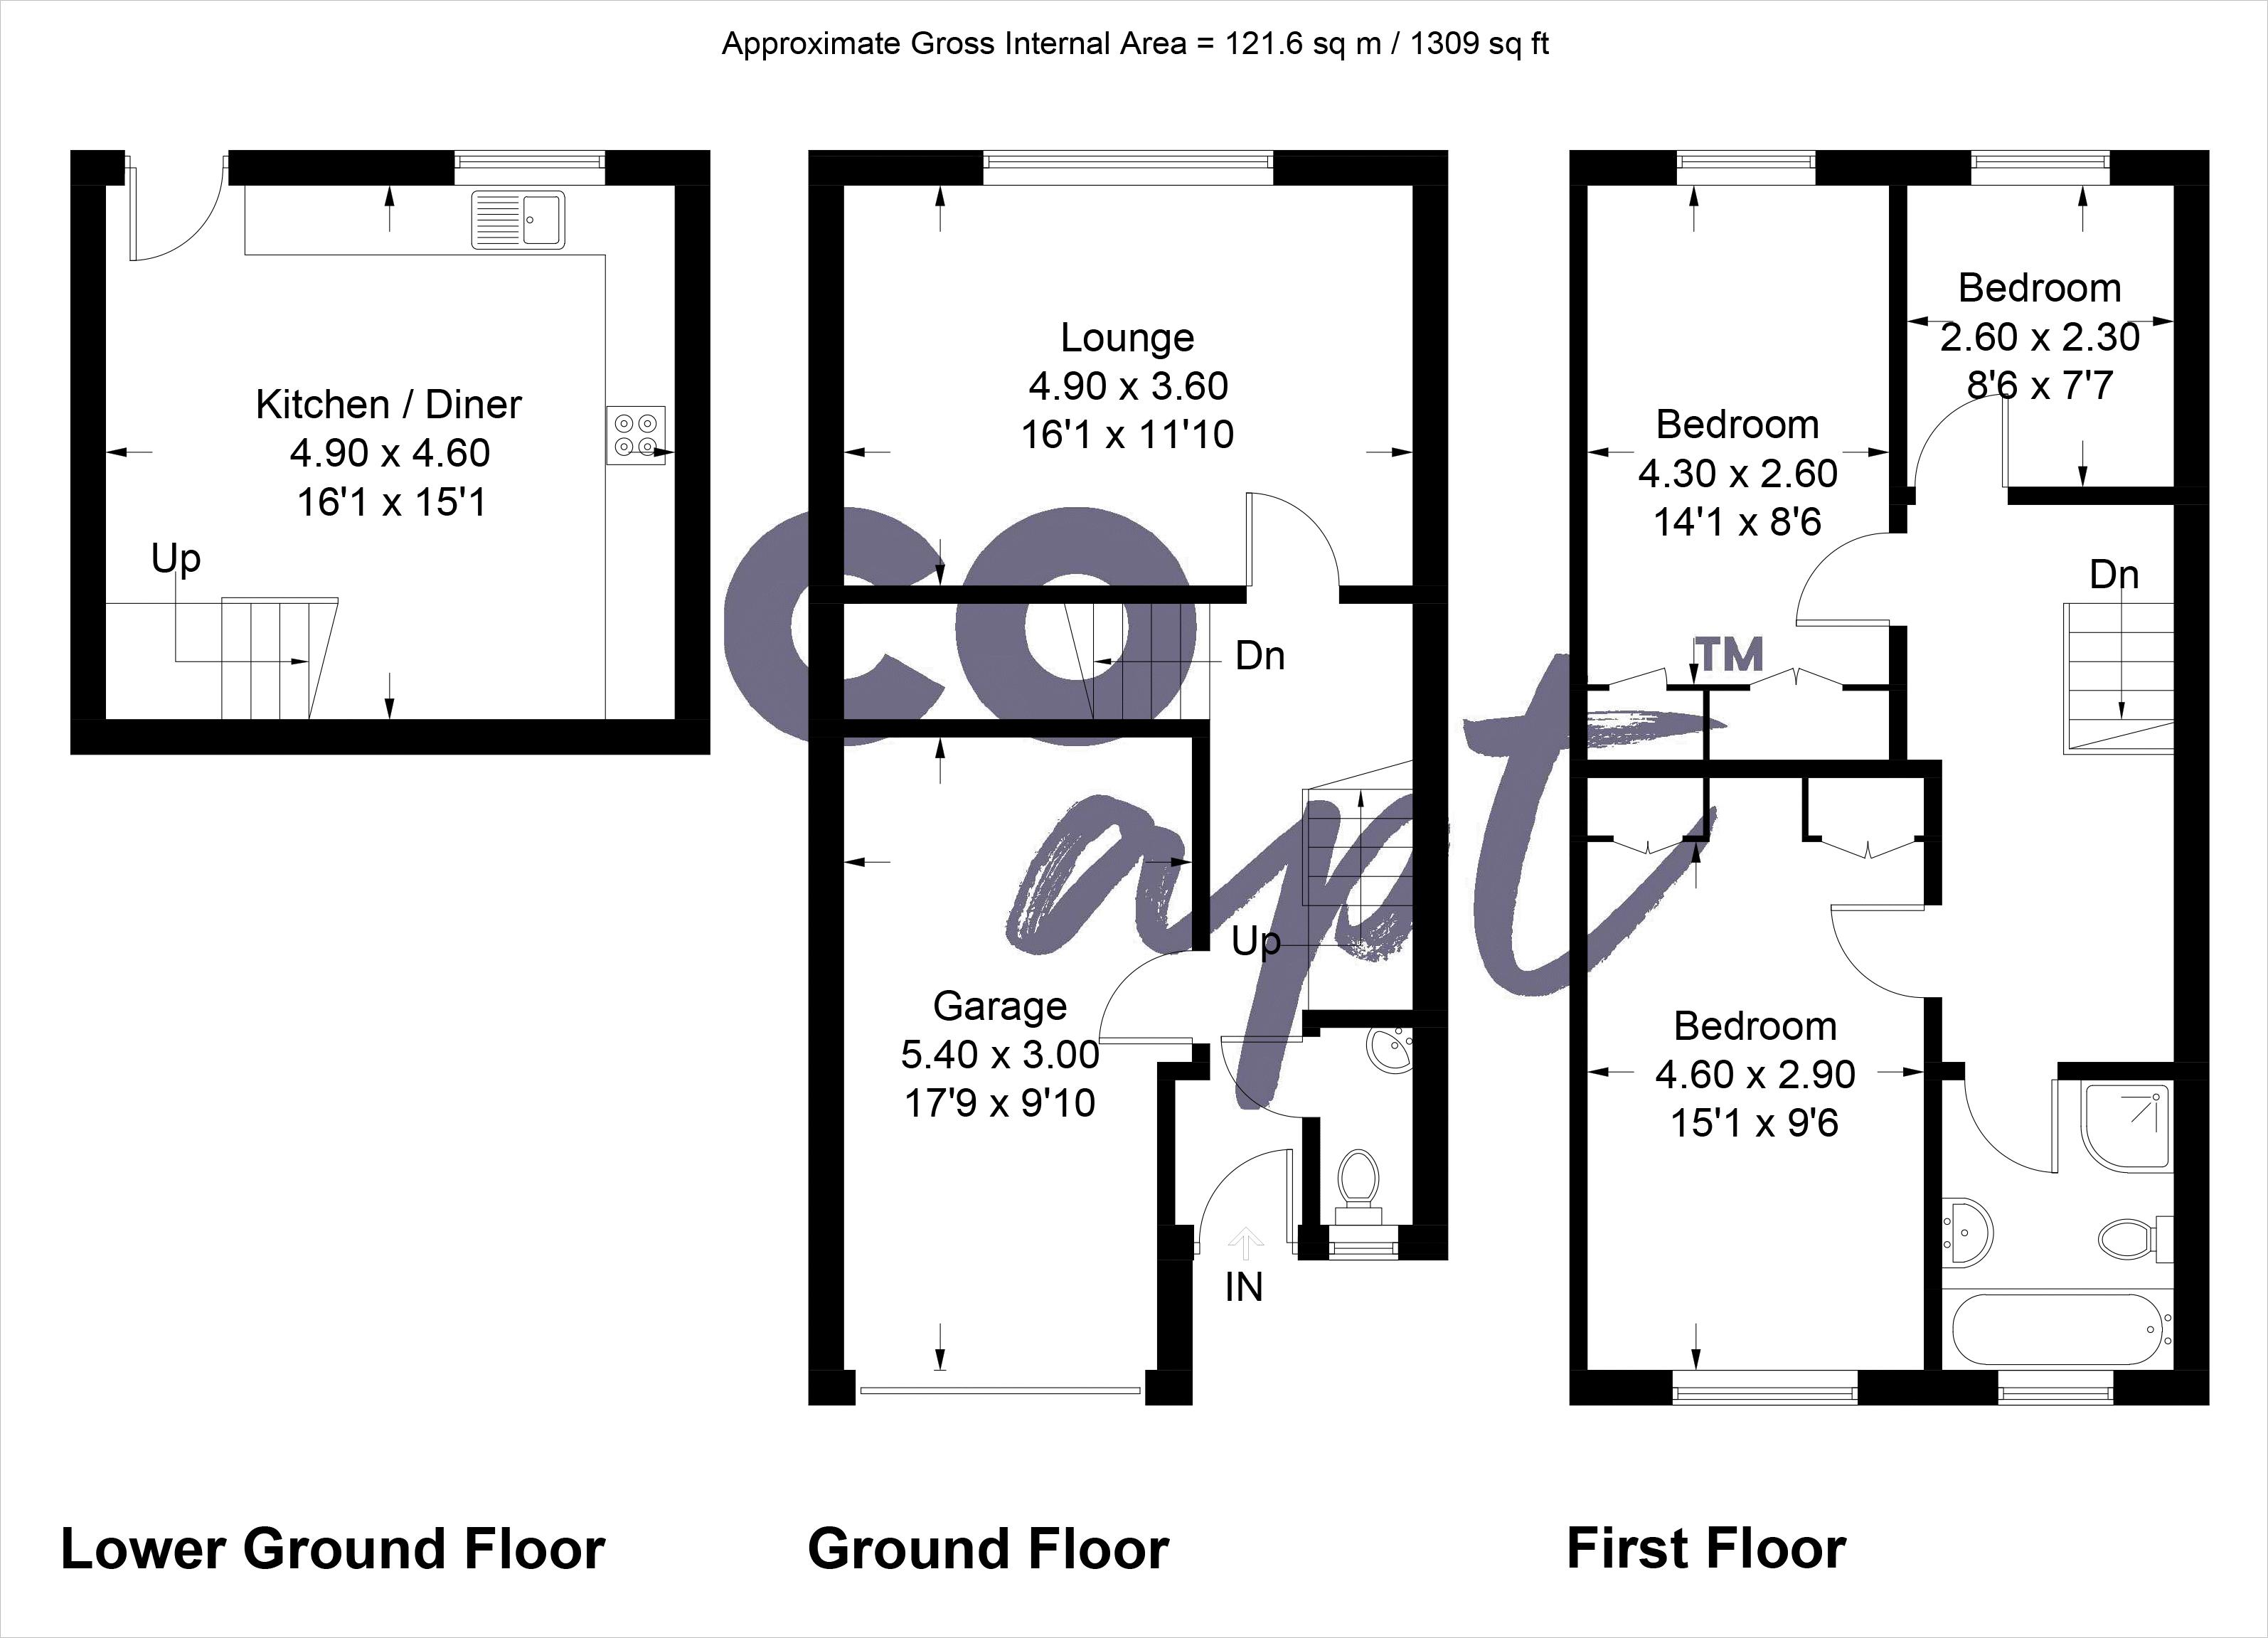 Floor plans for Slinfold Close, Brighton property for sale in Kemptown, Brighton by Coapt